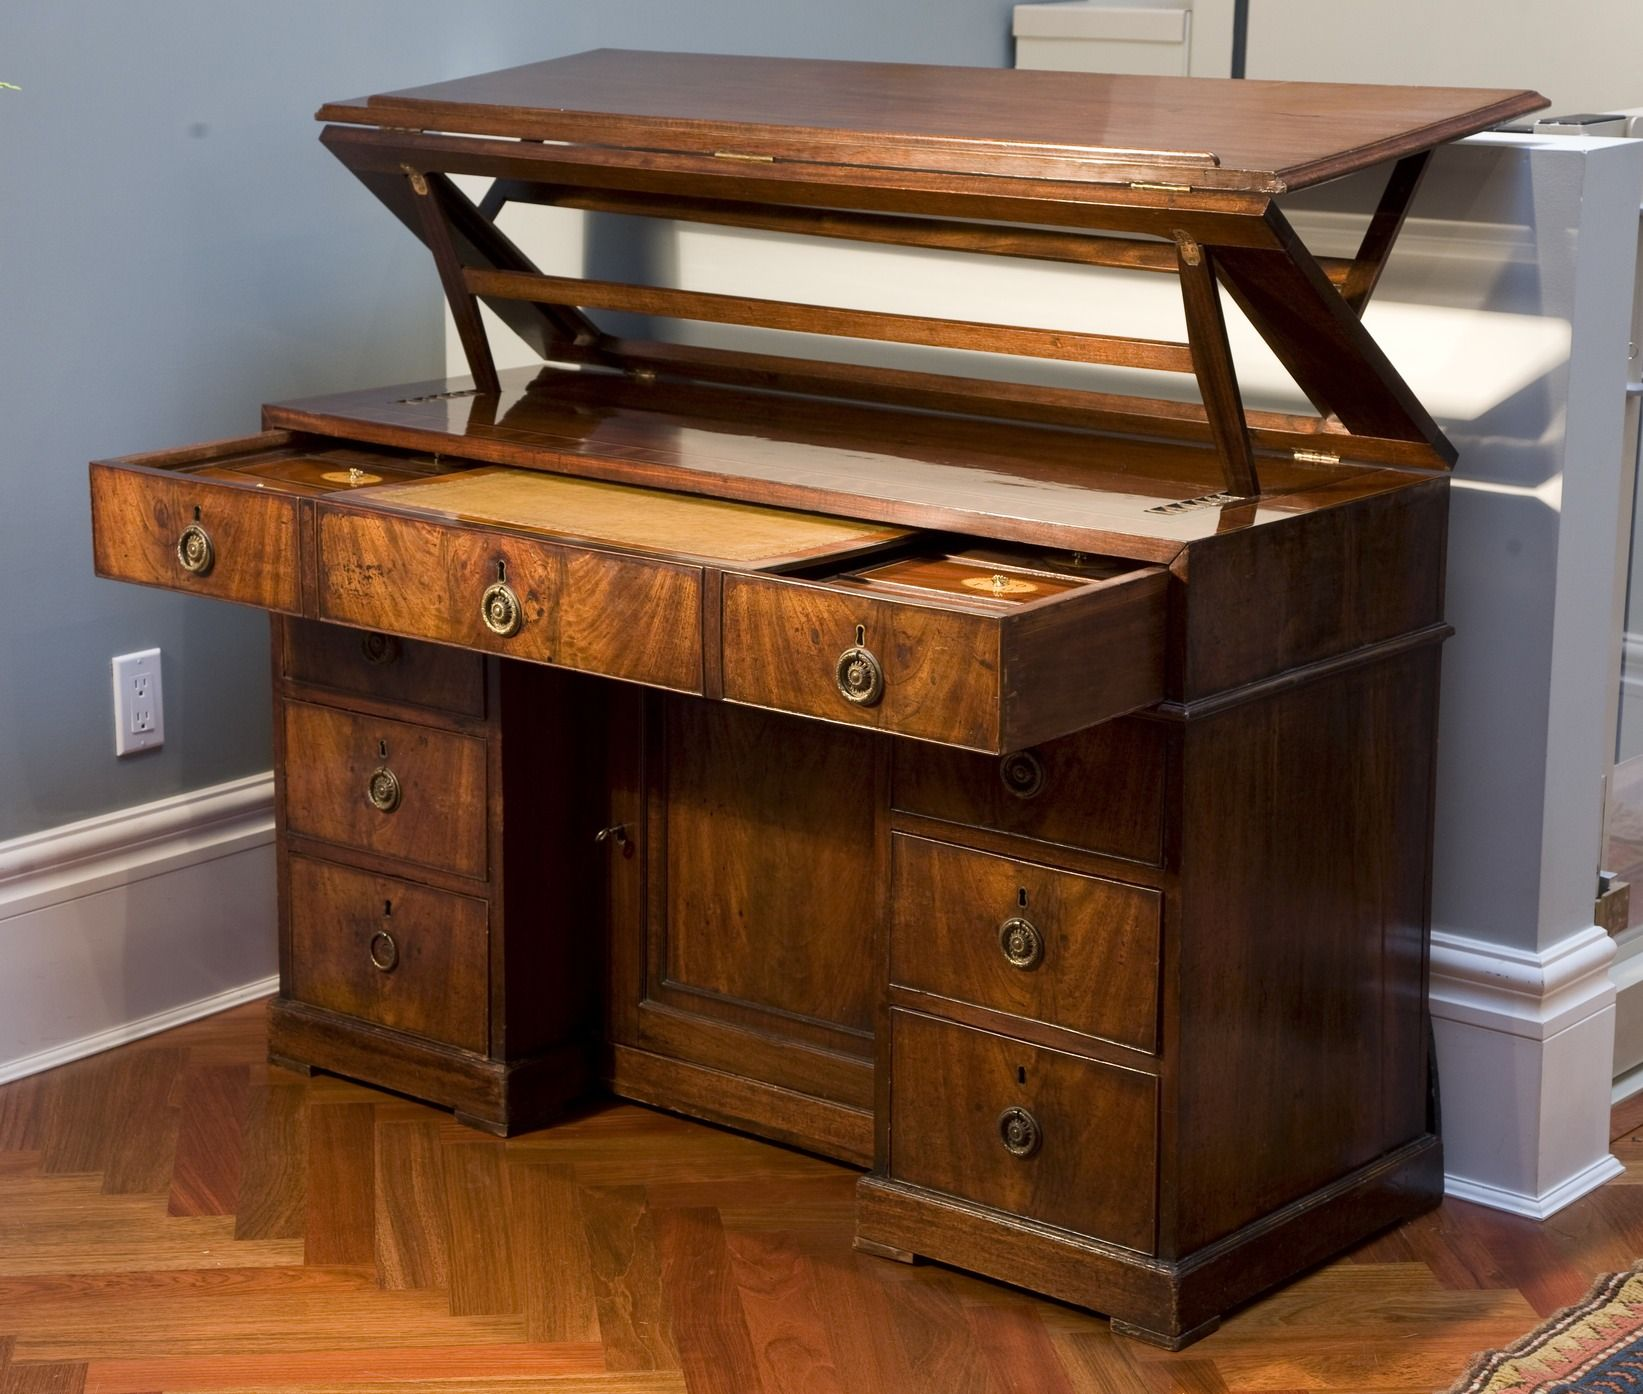 Antique George Iii Mahogany Architect S Desk Circa 1790 In The